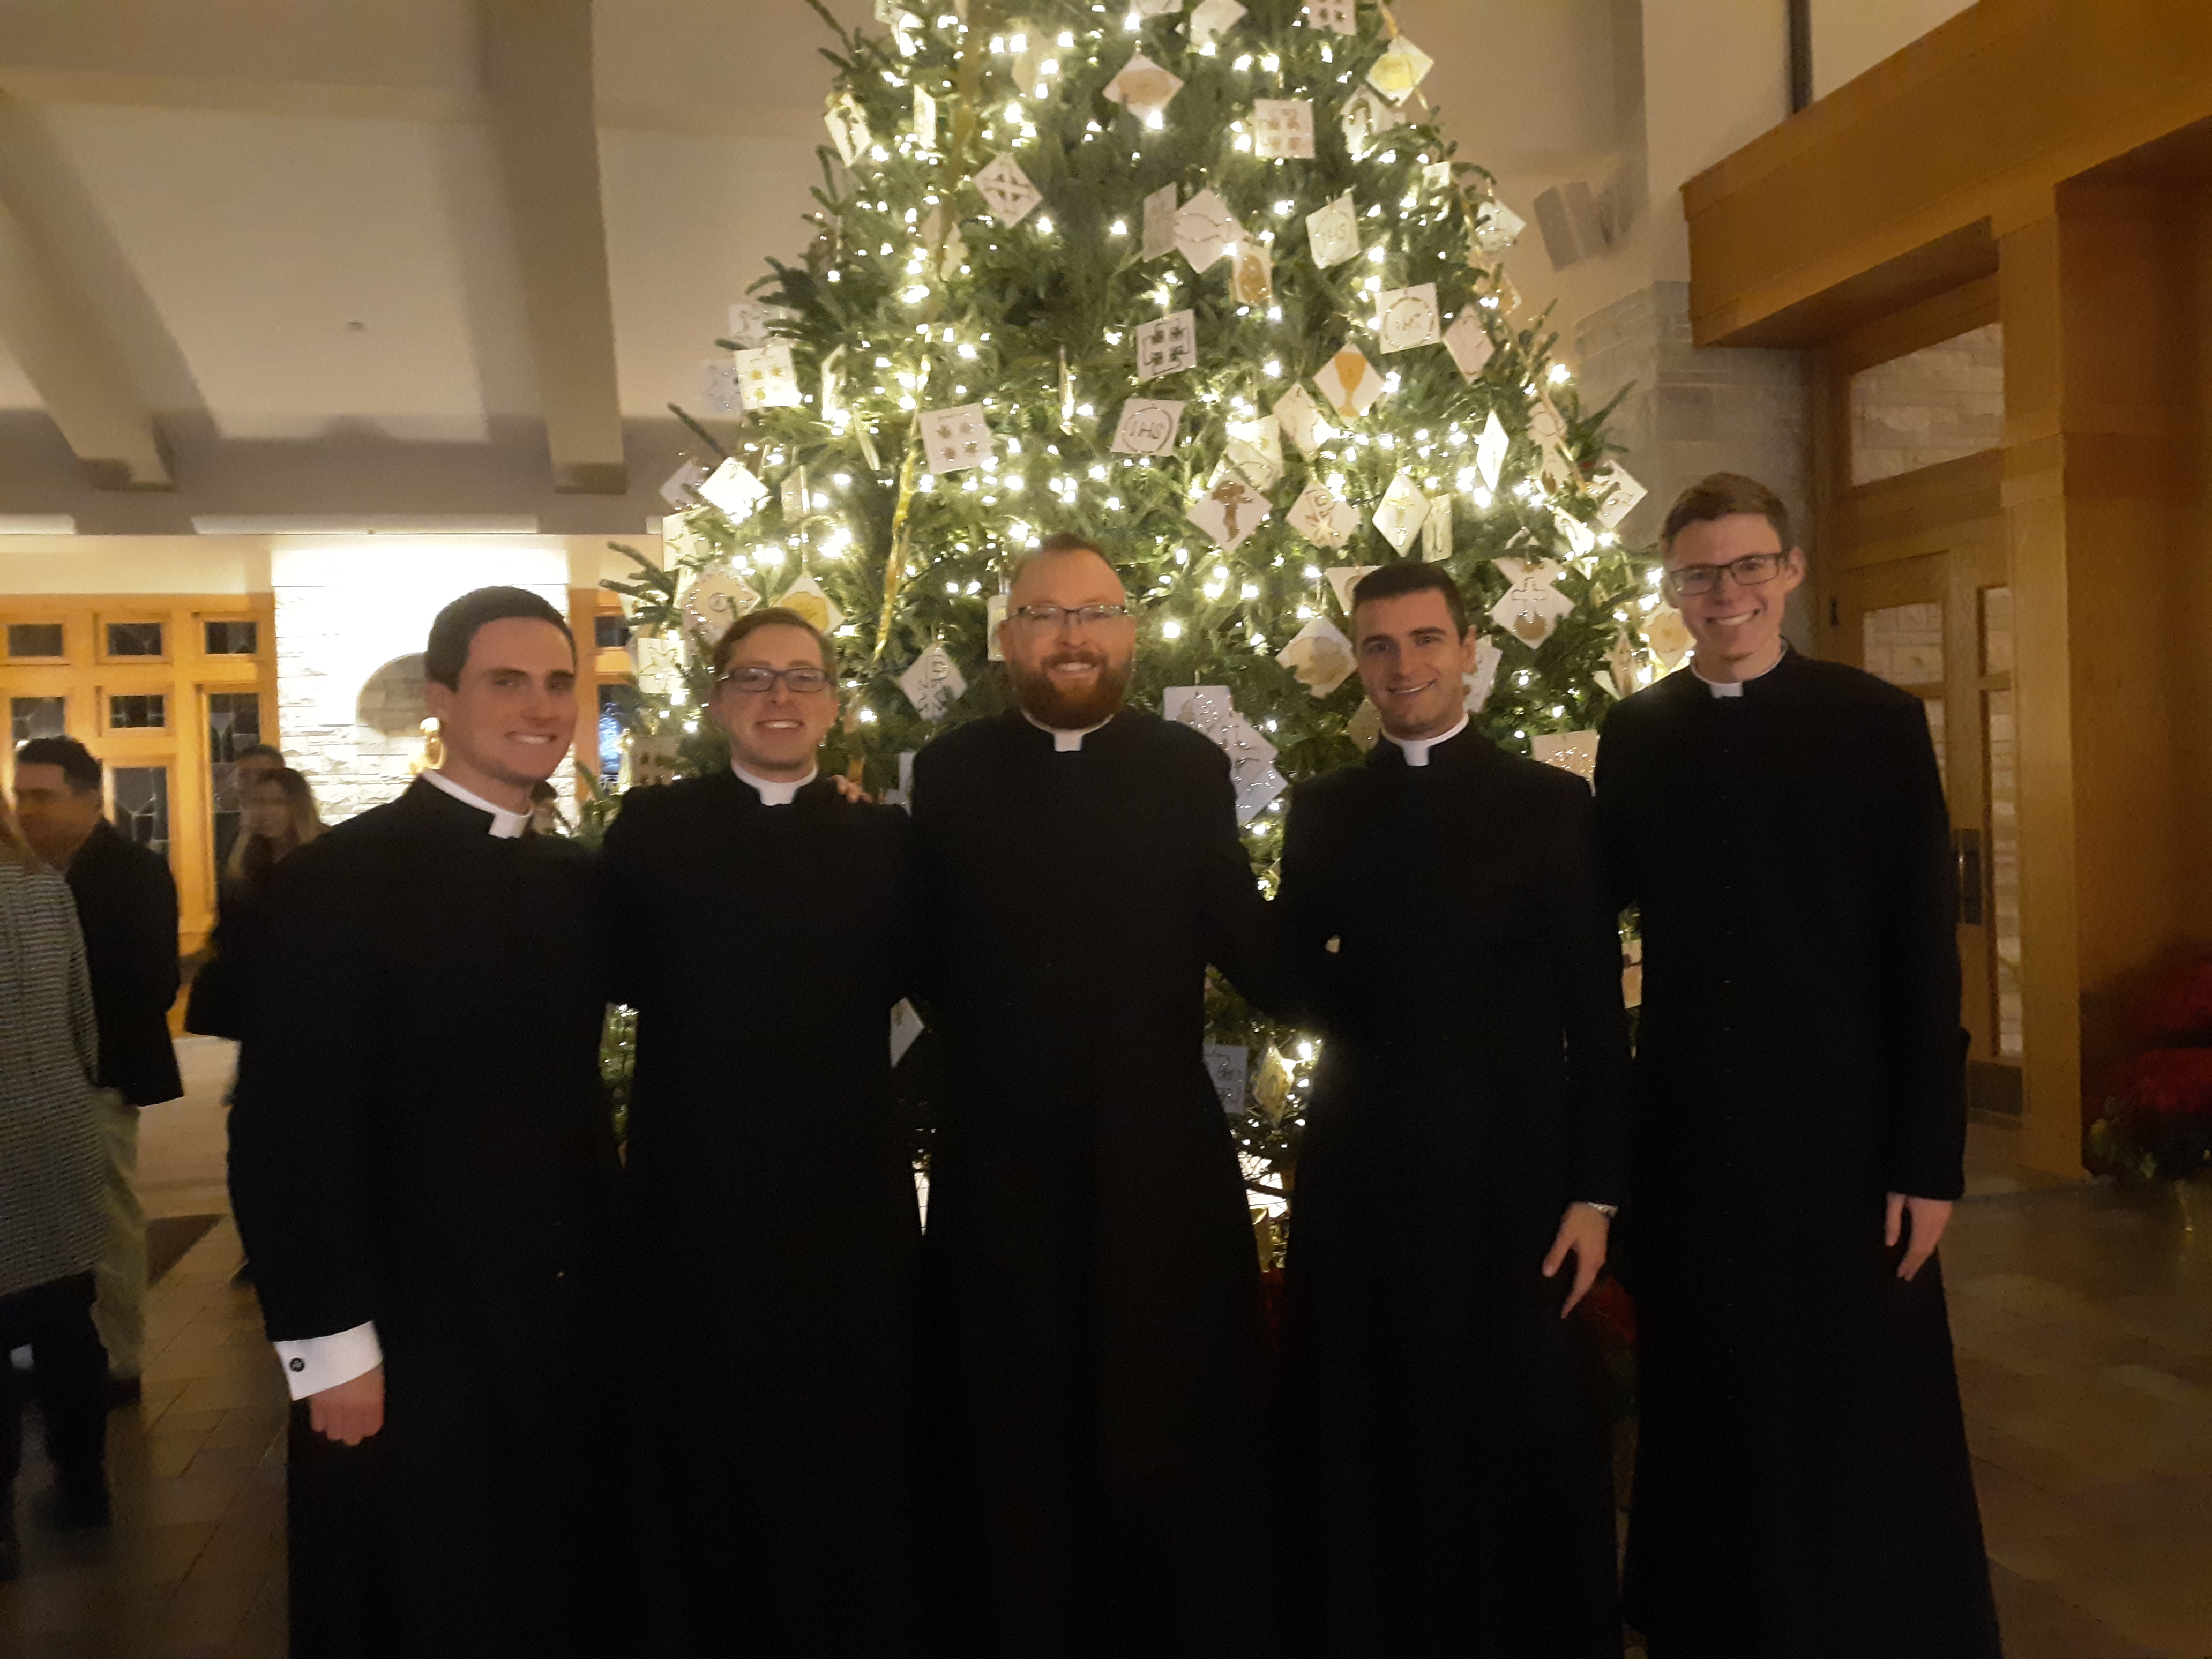 Christmas Eve Mass At The Vatican 2020 Knights Of Columbus Welcome to the Knights of Columbus #7198